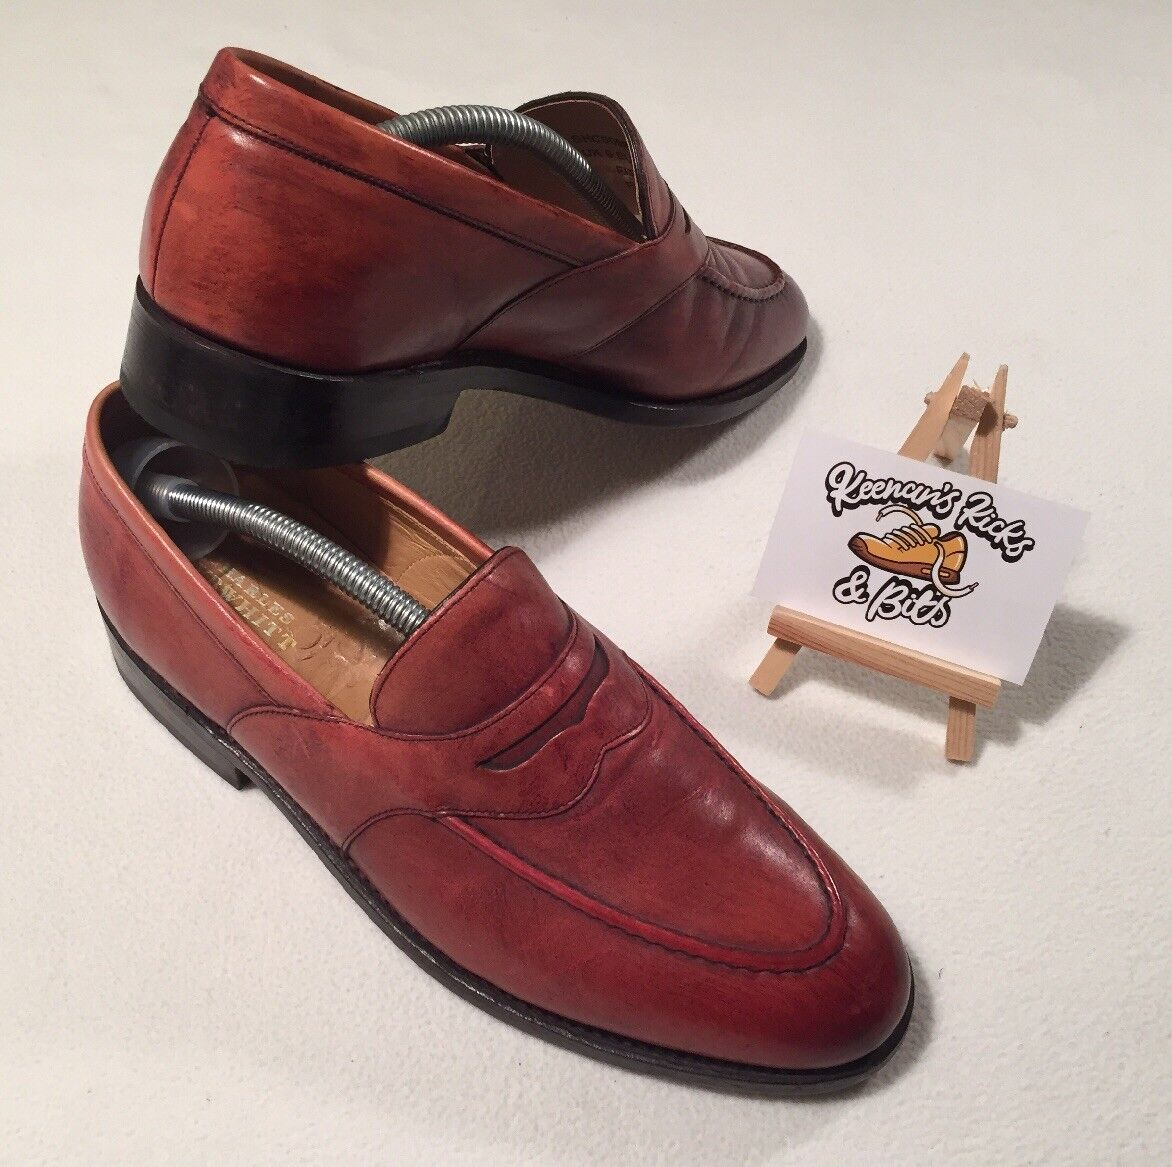 Charles Tyrwhitt Brown Tan Allet Slip on loafers UK 6 Fit F 'ESSEX CITY WEDDING'